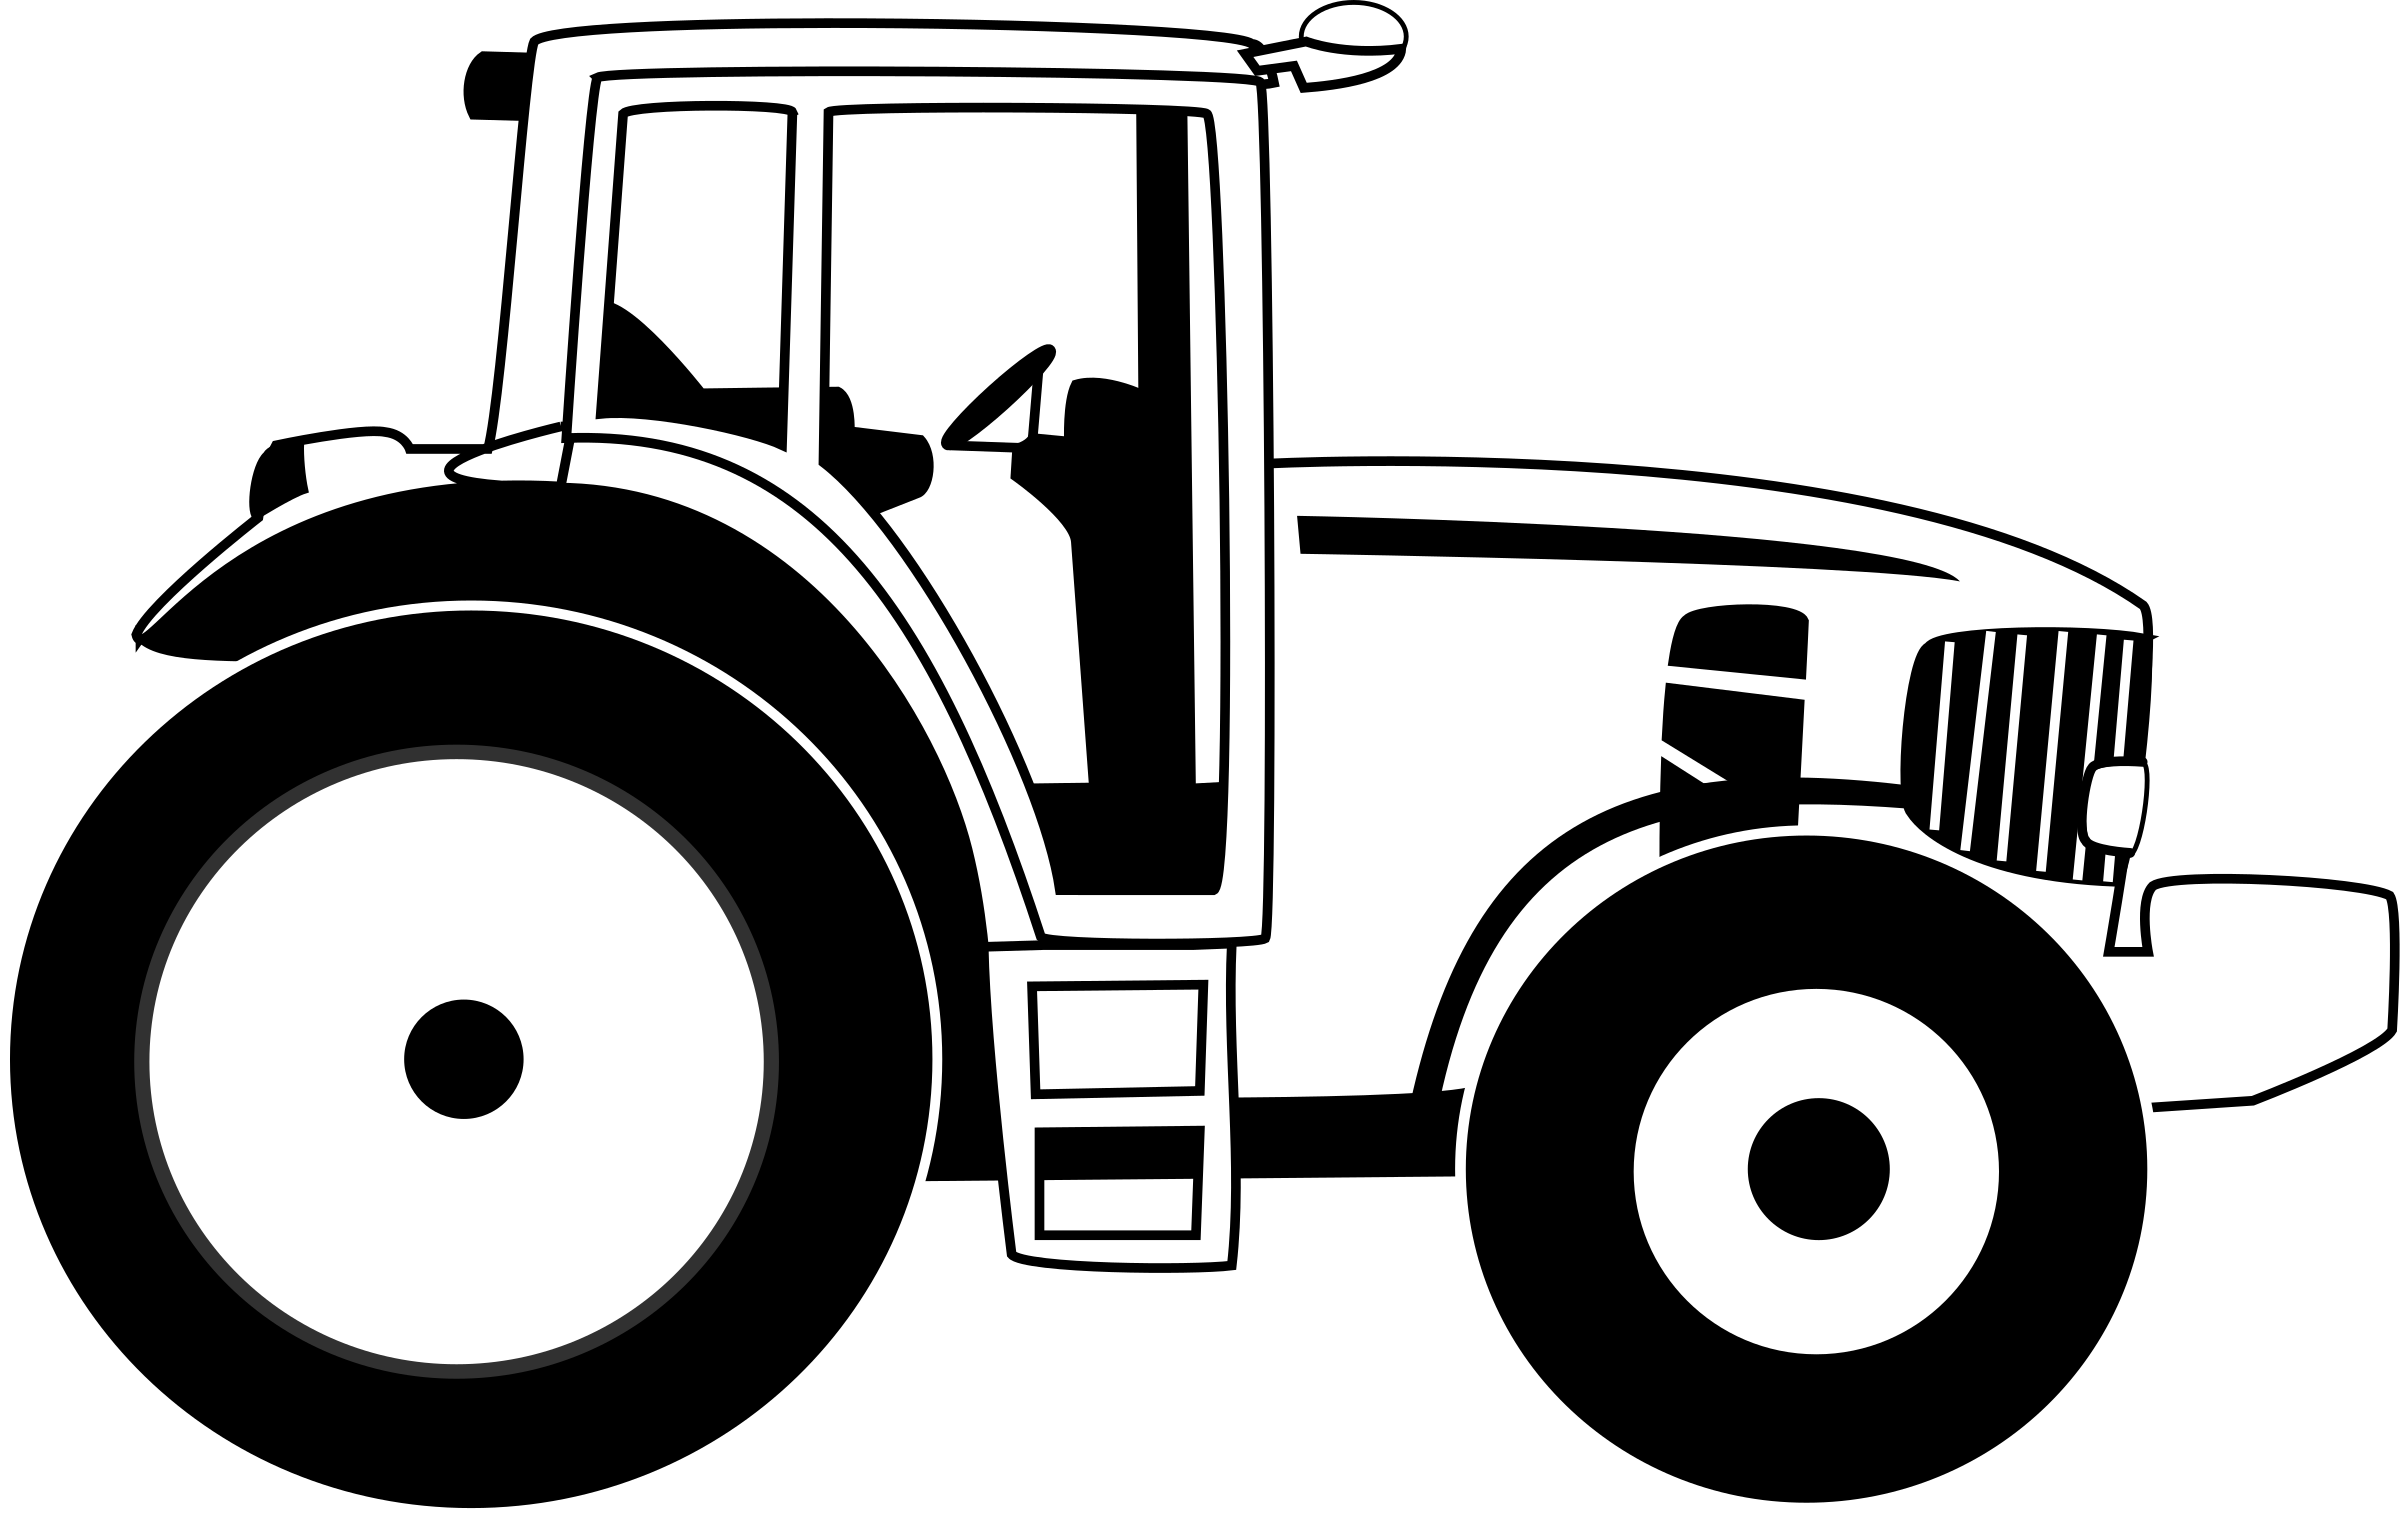 Tractor b w big. Agriculture clipart farm machinery